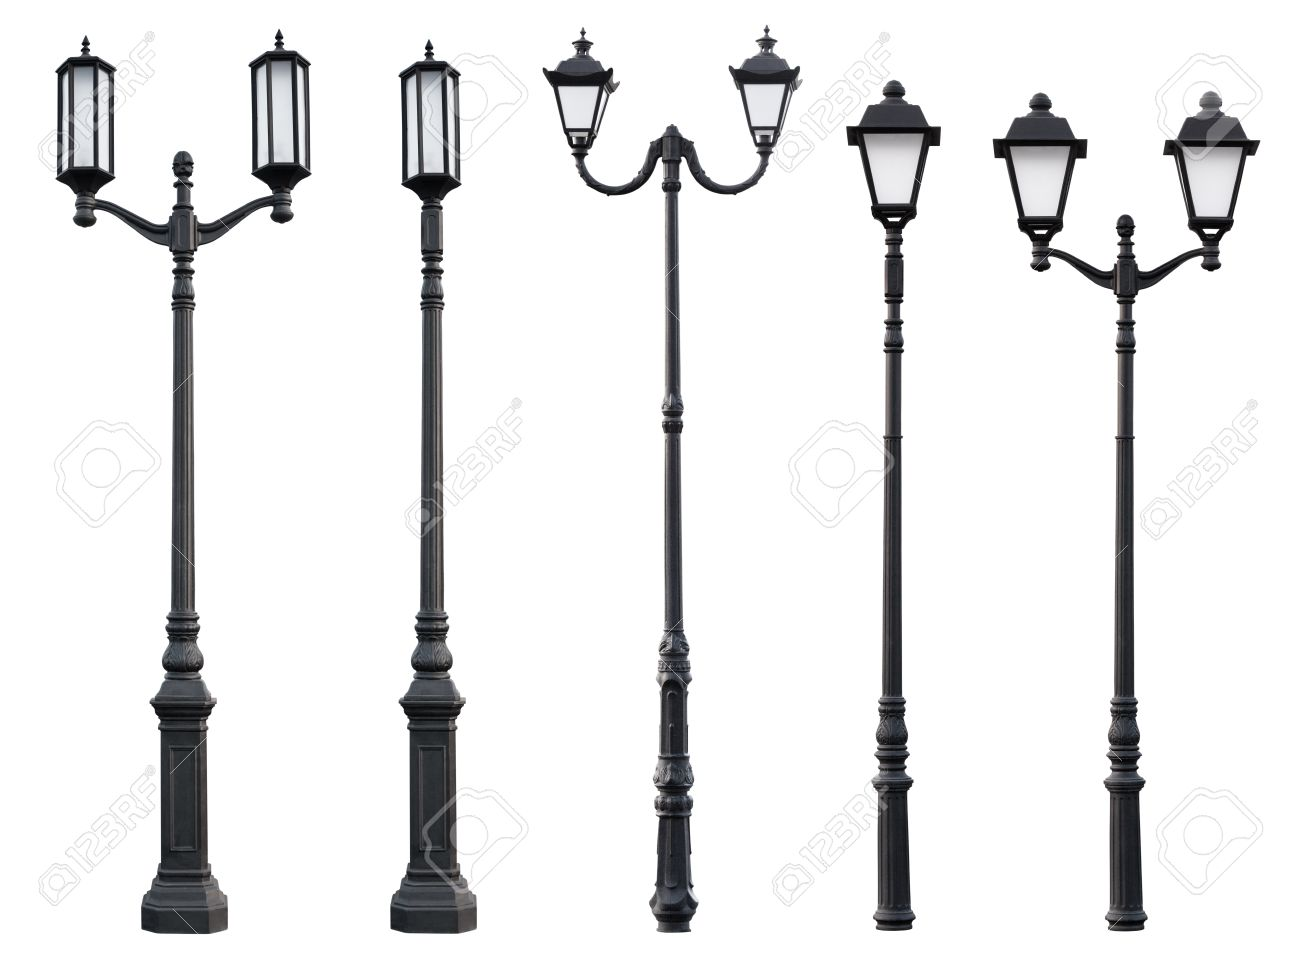 vertical lamp photo cutout stock of street post images image light